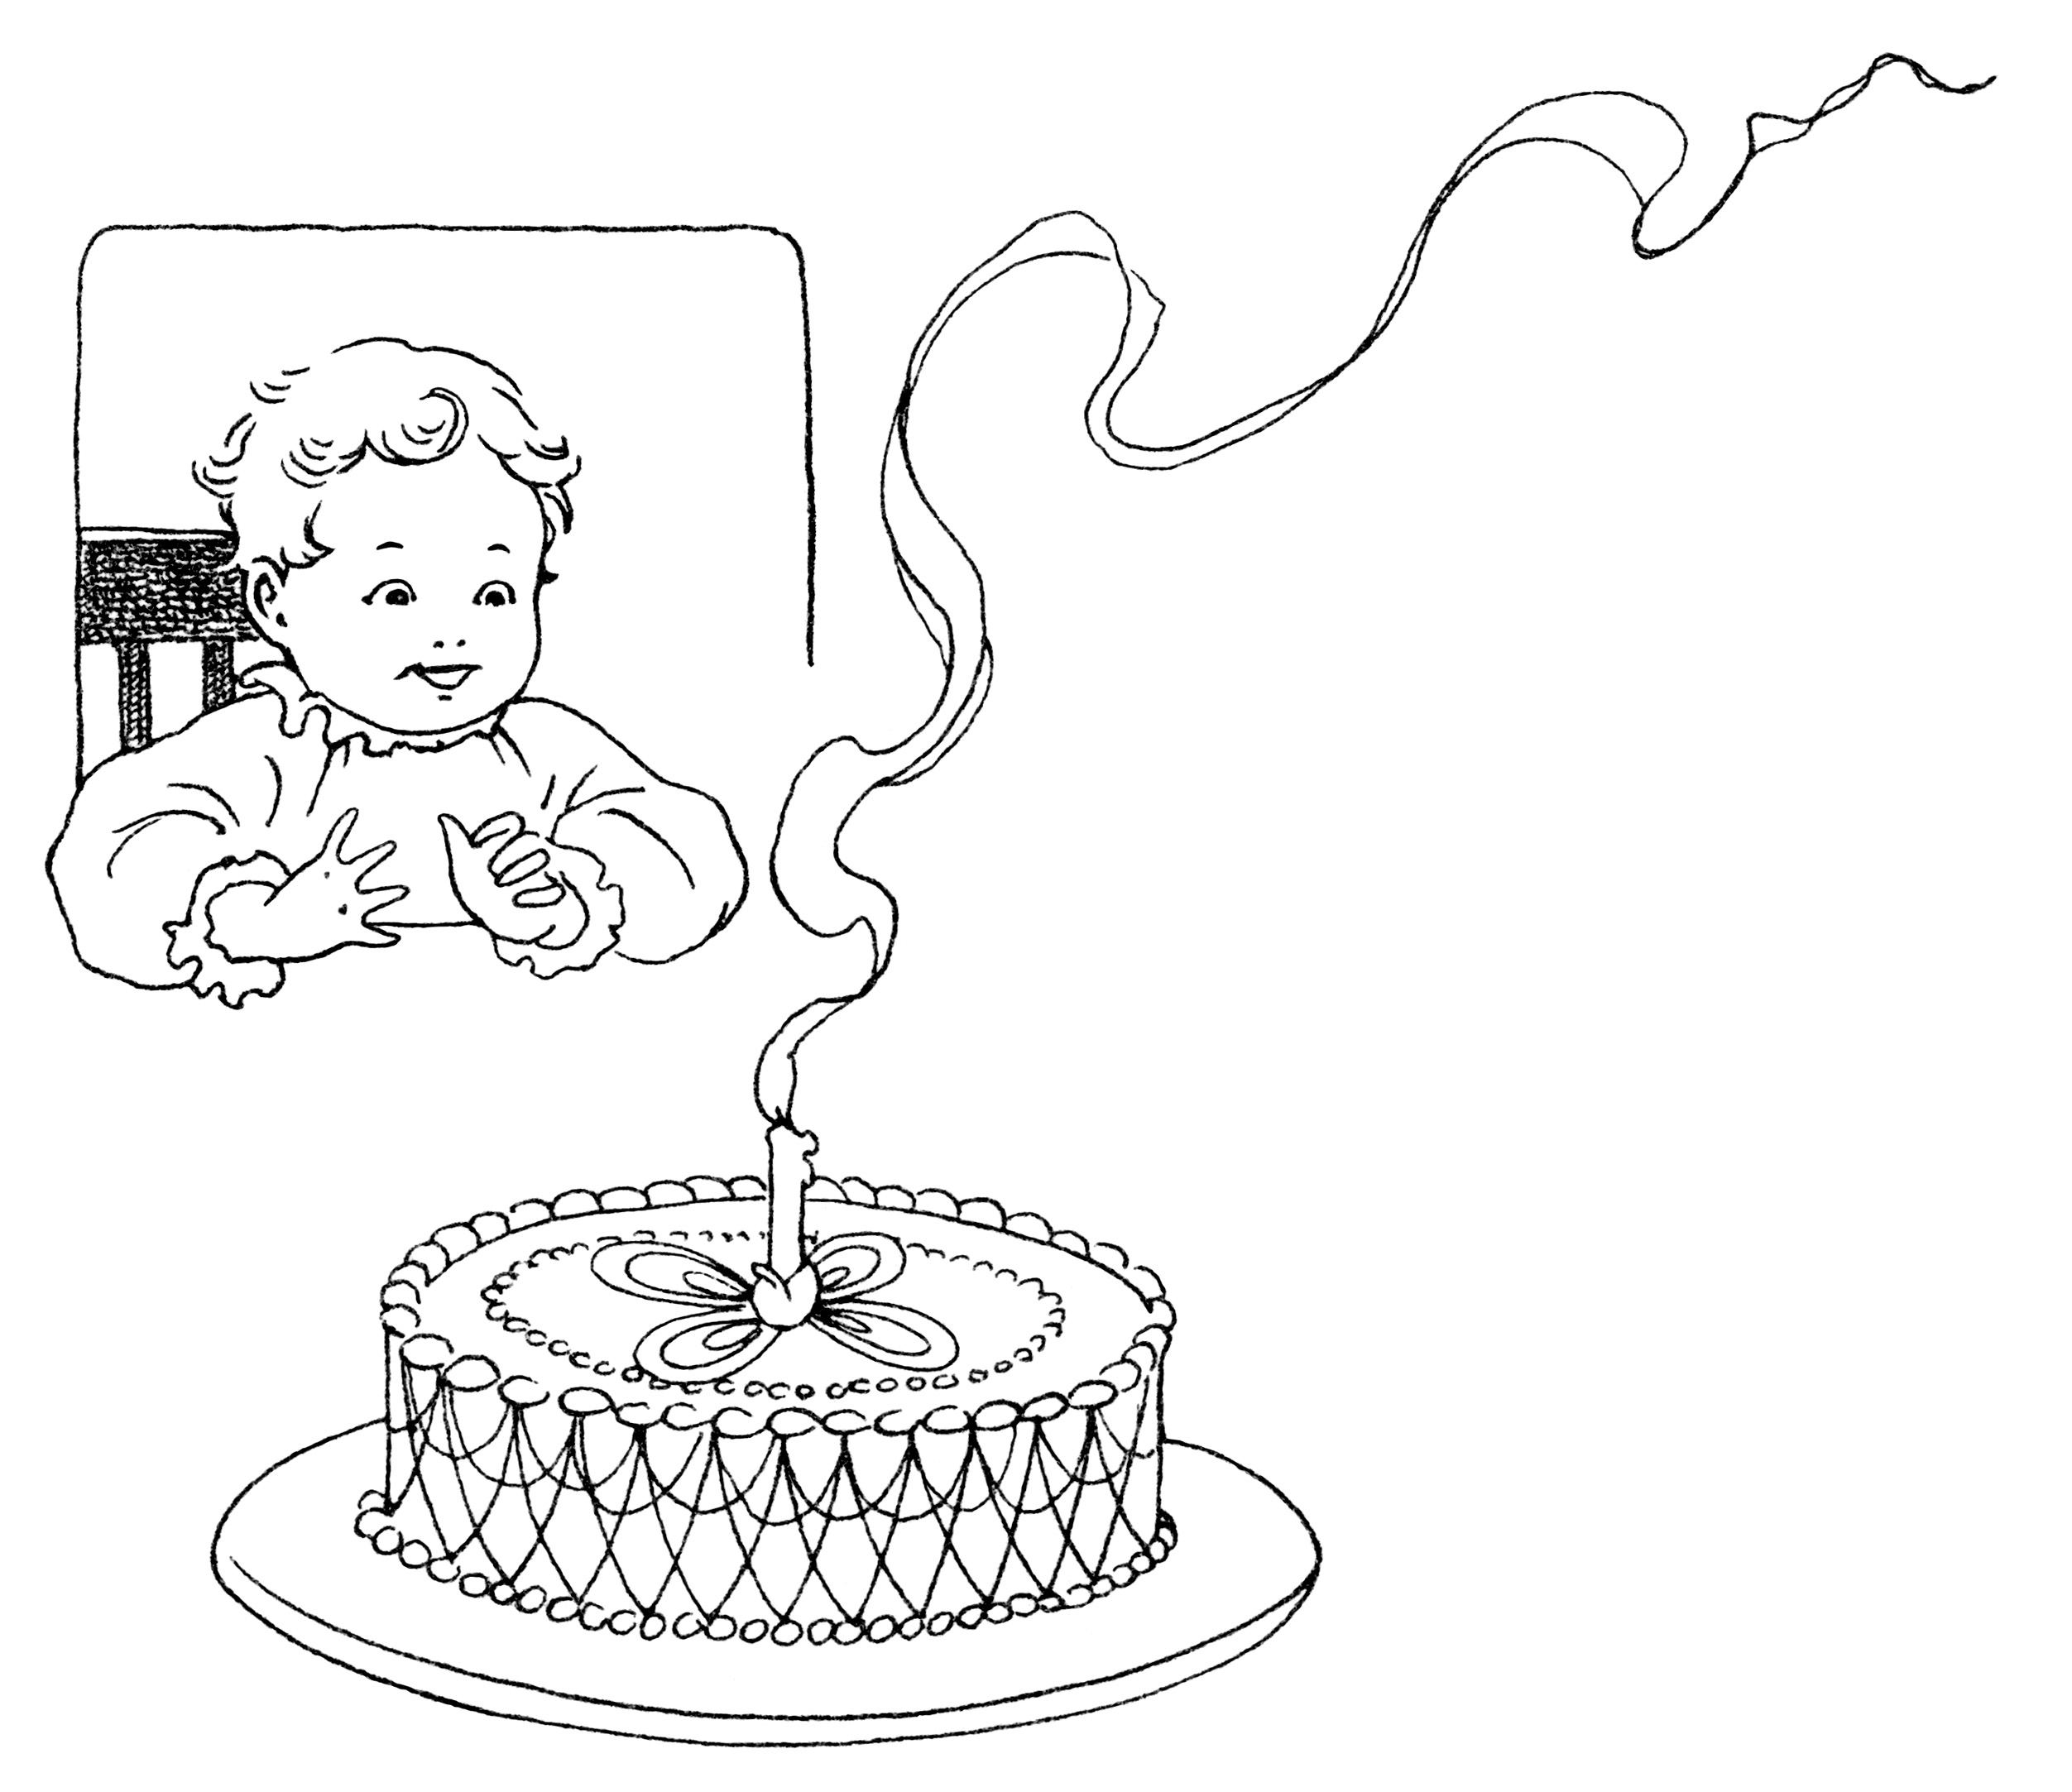 Baby S First Birthday Free Vintage Clip Art